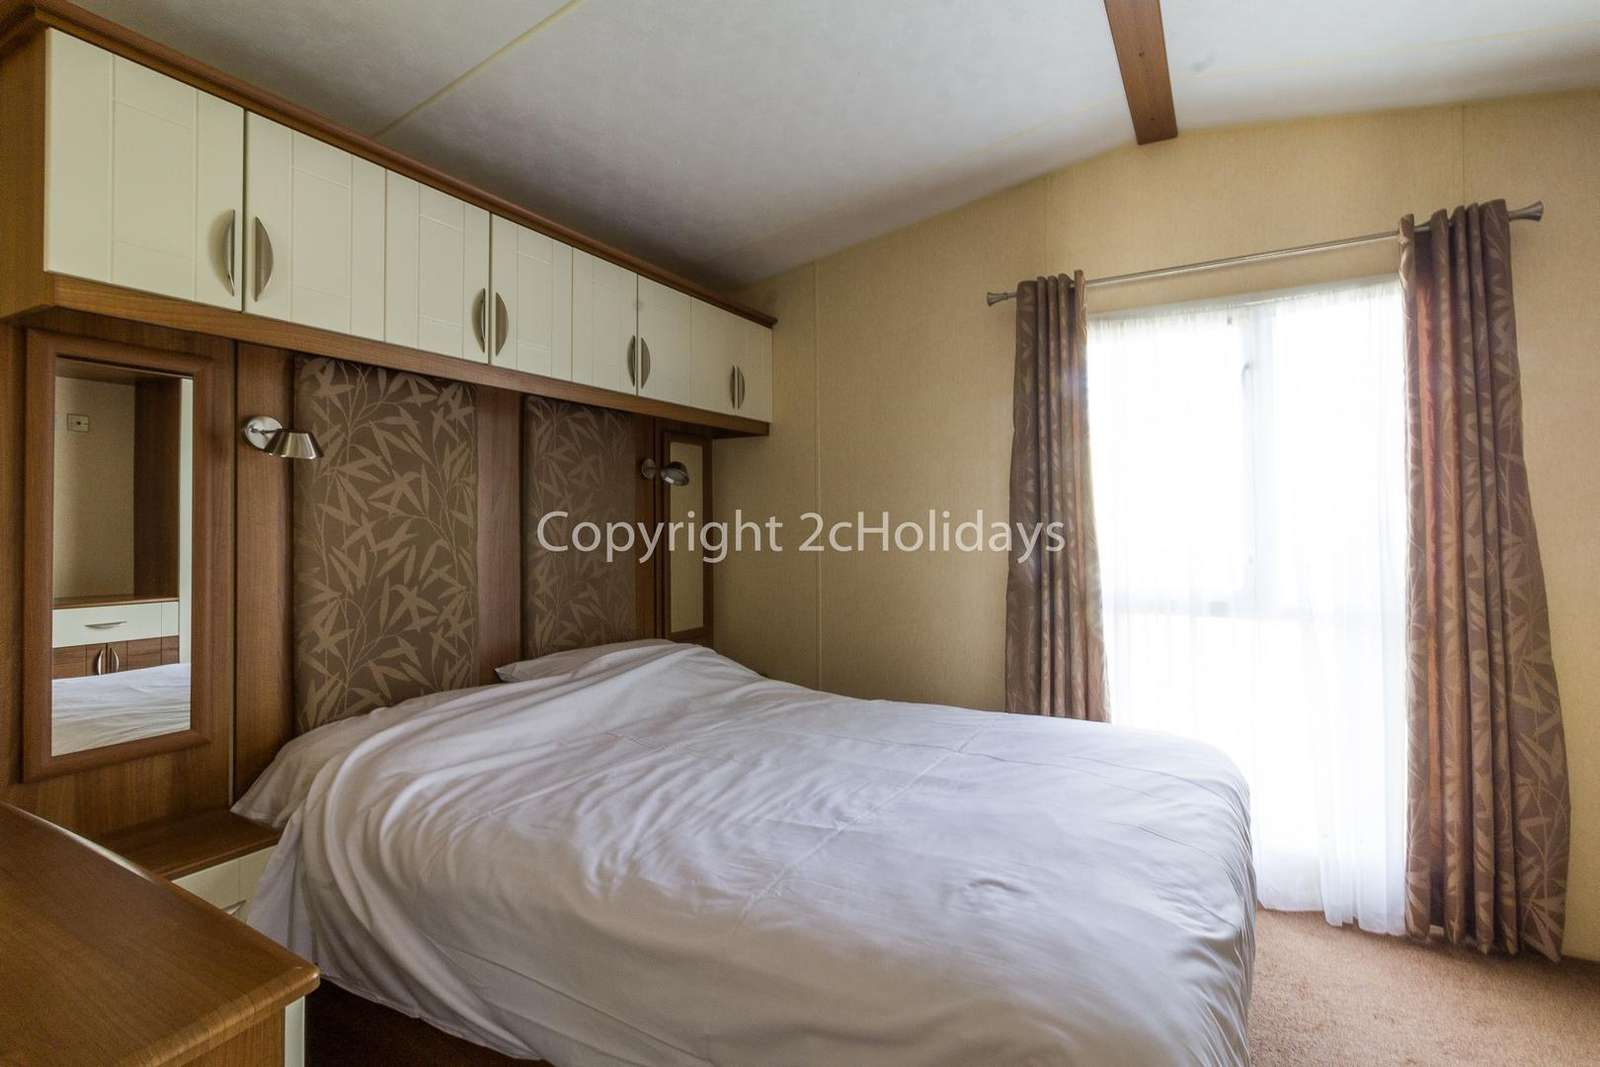 Great size and comfortable master bedroom!